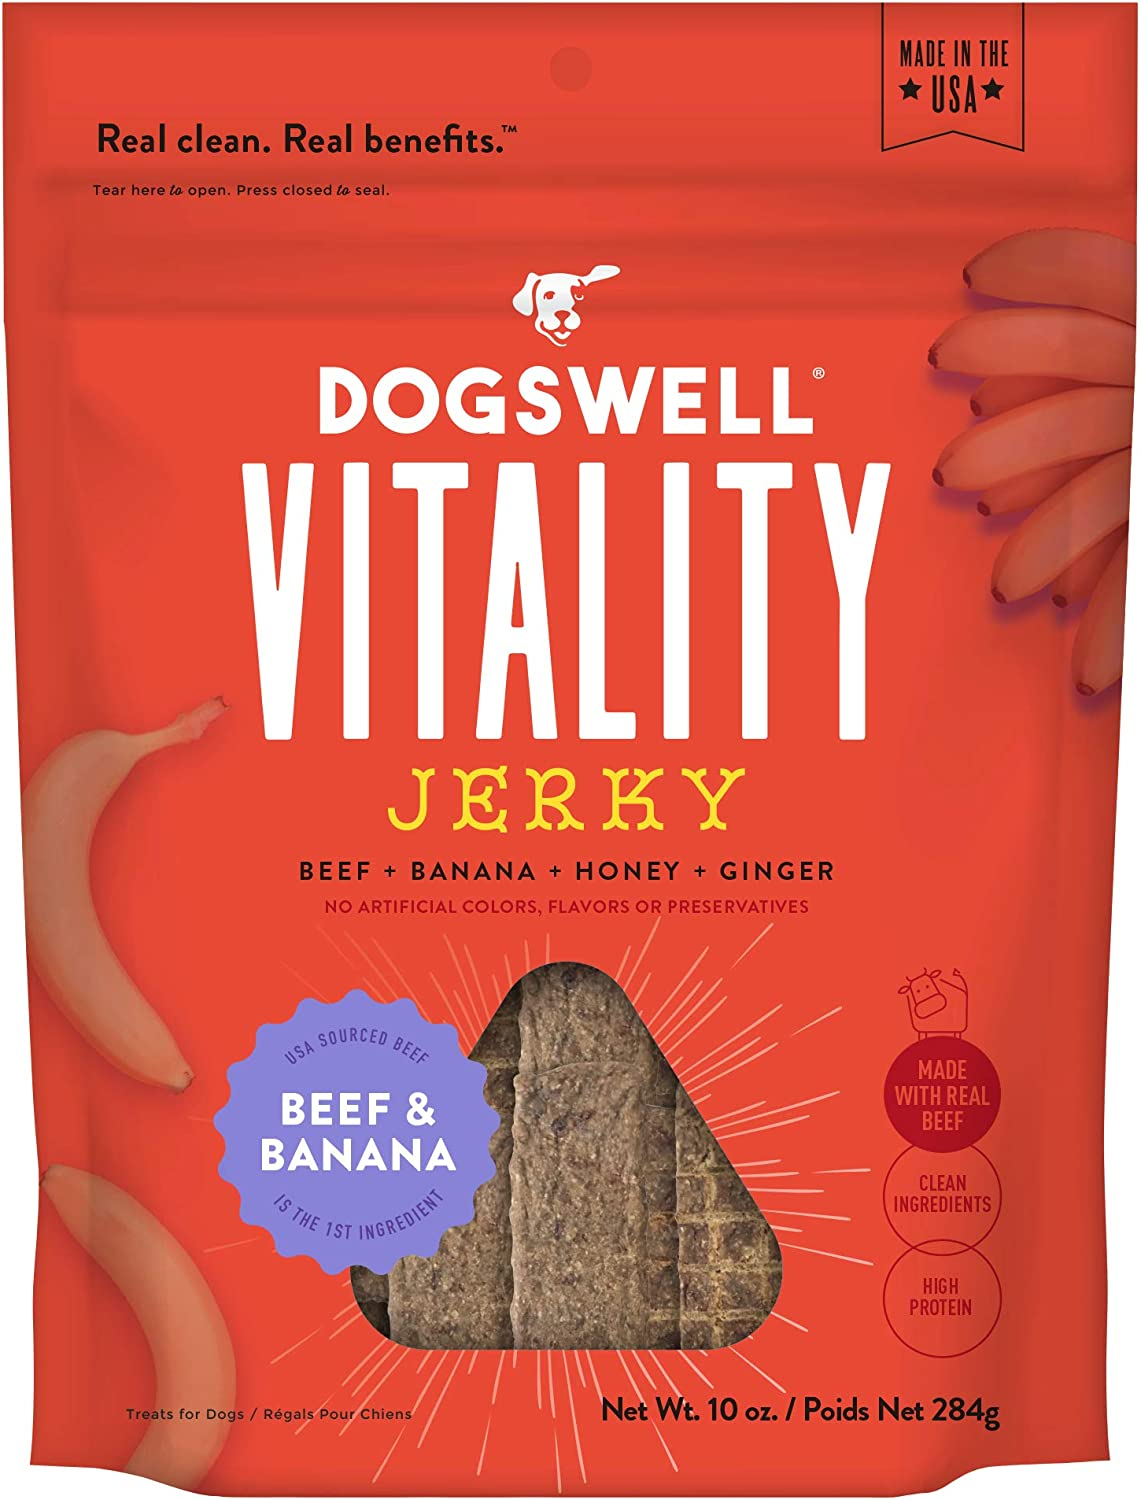 DOGSWELL Vitality 100% Meat Jerky Dog Treats, Made in The USA Only Grain Free, Protein